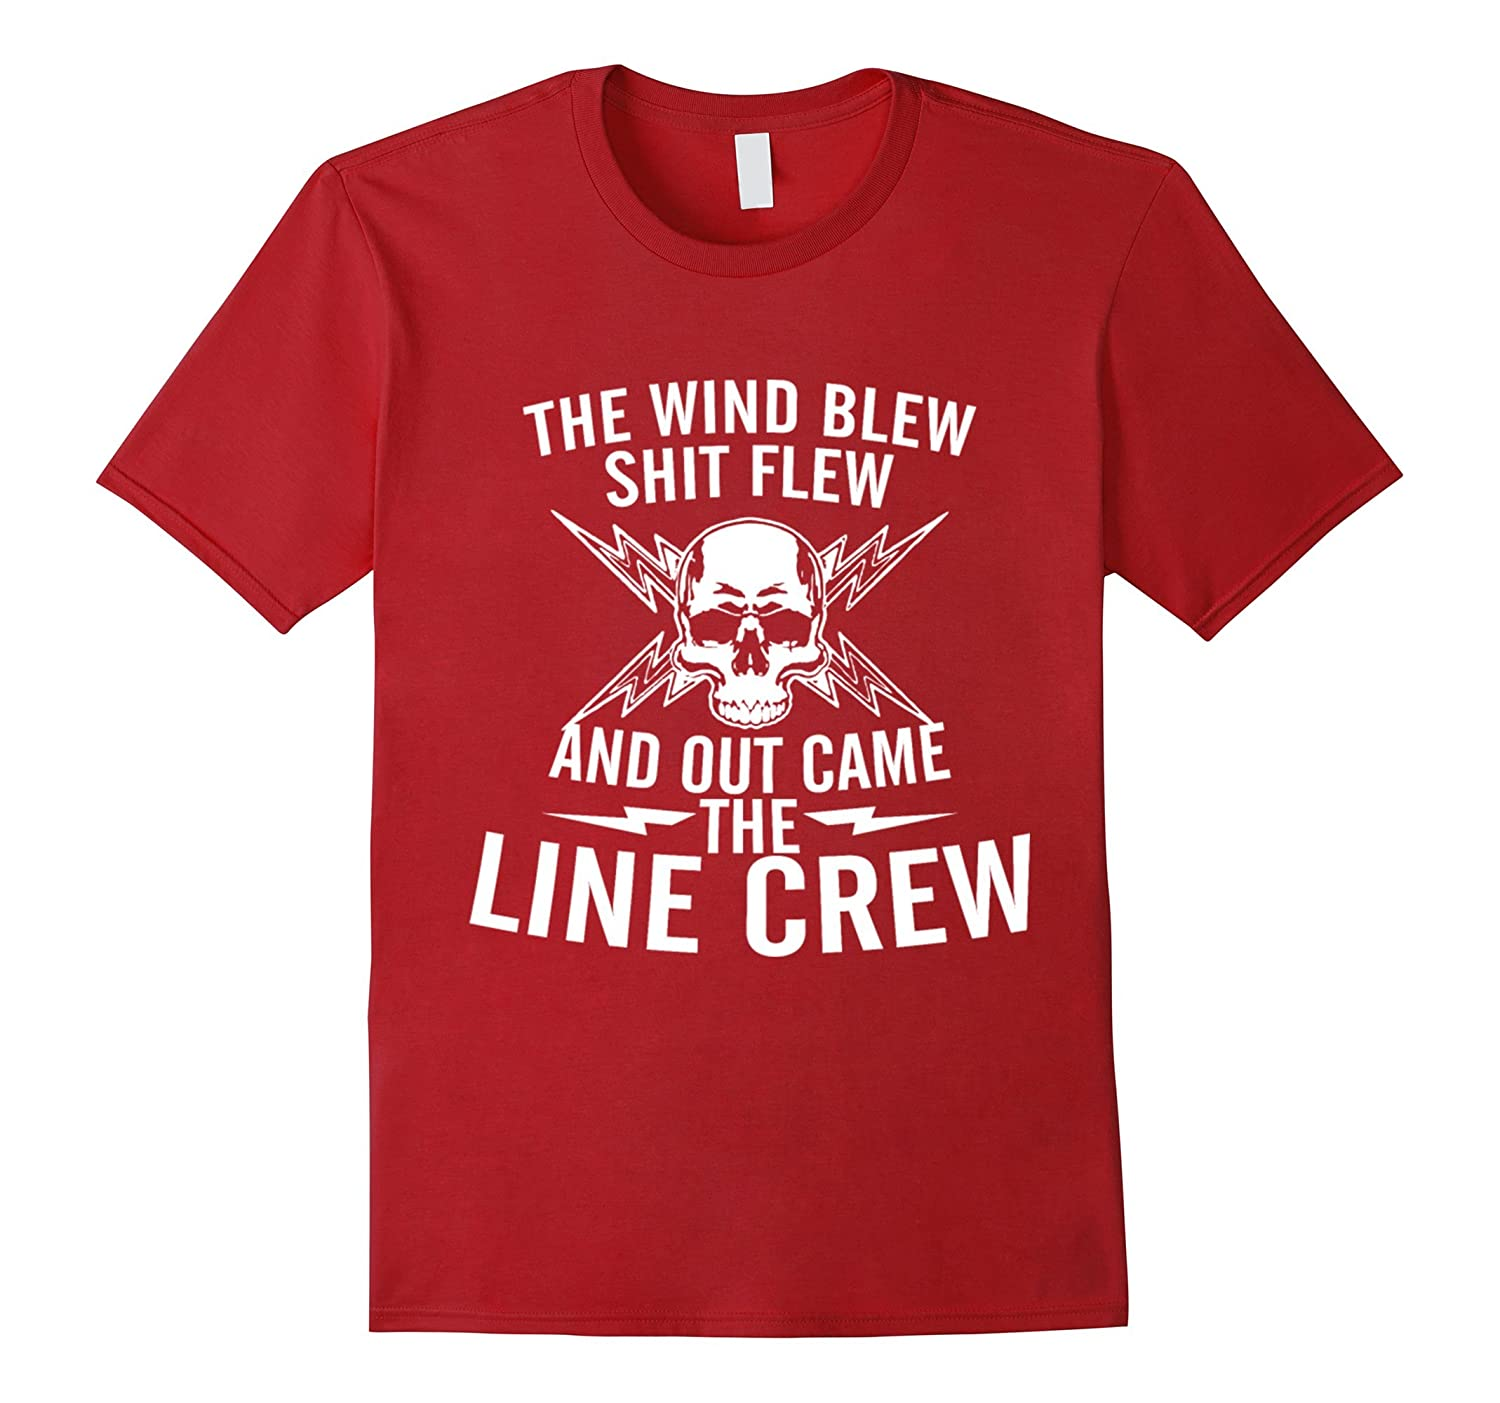 The Wind Blew Shit Flew And Out Came The Line Crew T-Shirt